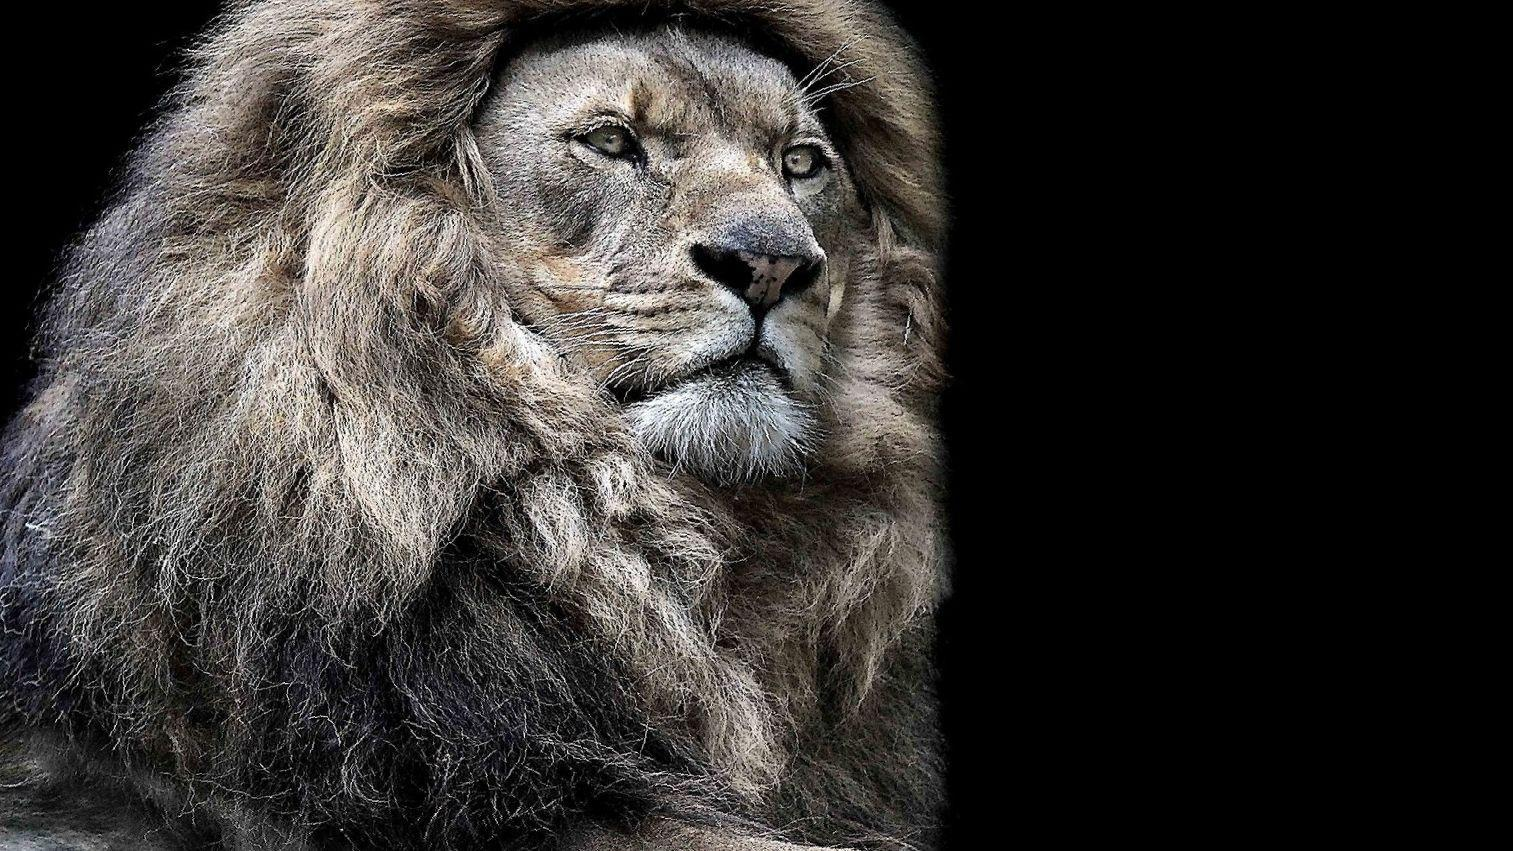 Lion Wallpaper Pictures Hd Images Free Photos 4k For Android Apk